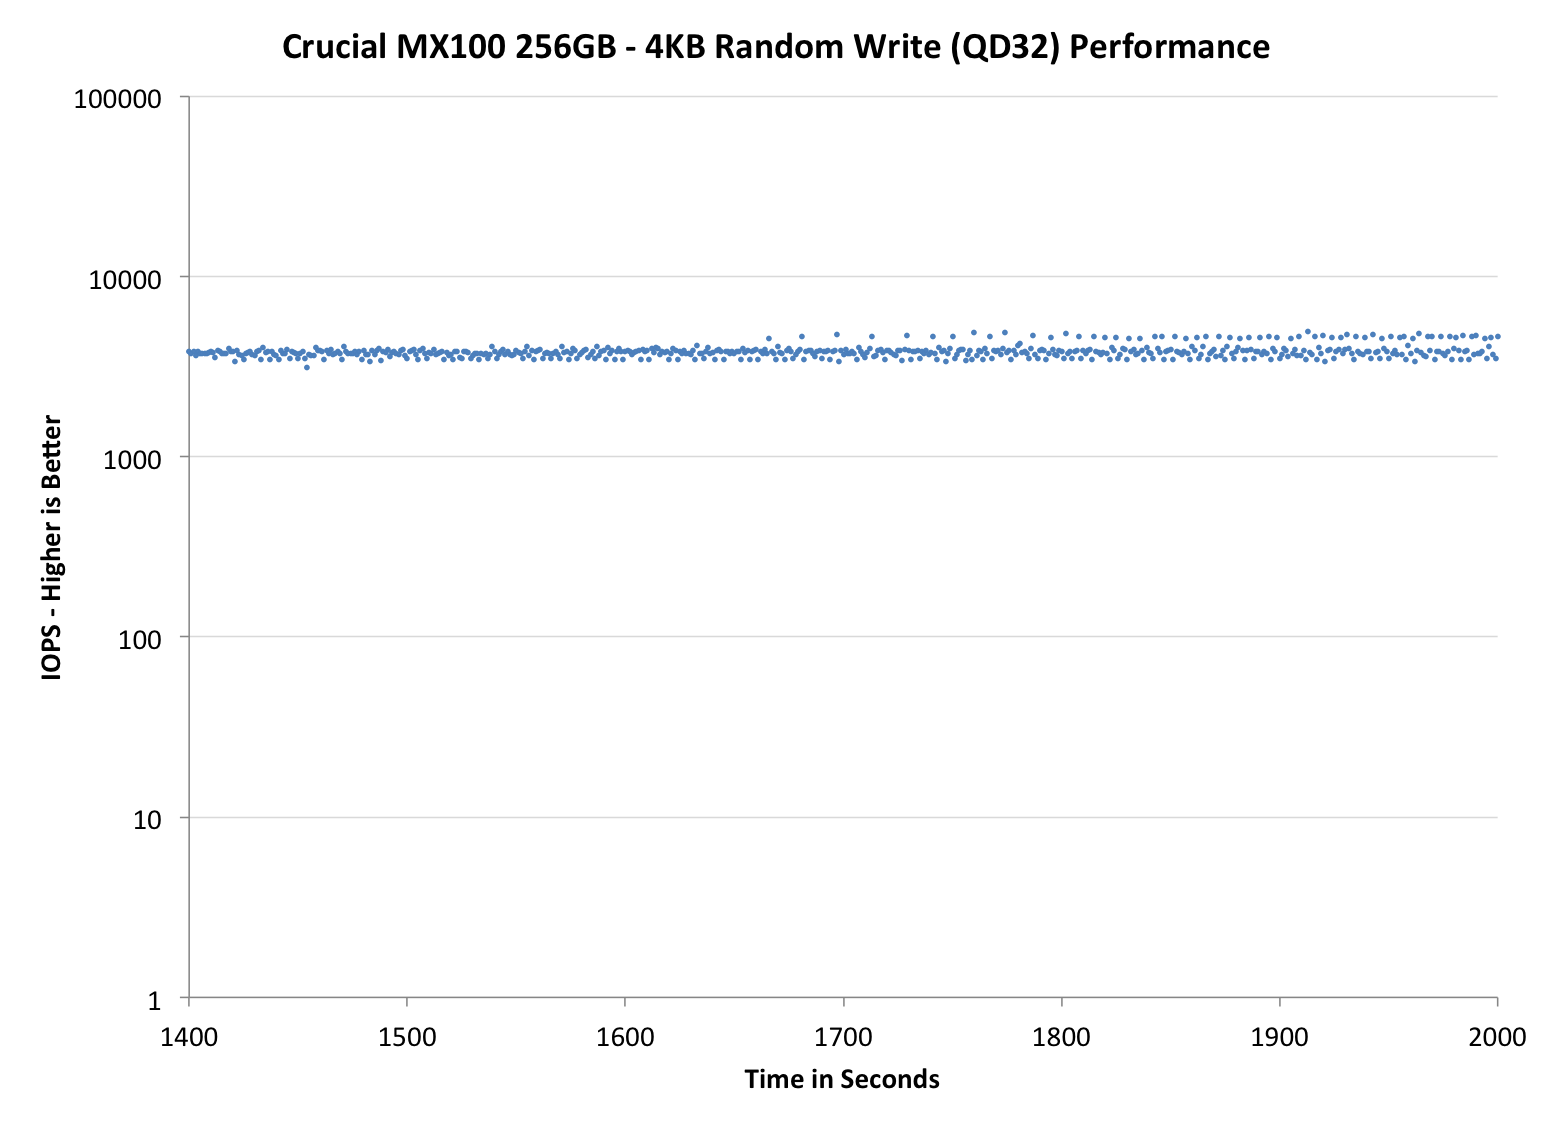 Performance consistency trim validation upgrading the ssd in performance consistency trim validation upgrading the ssd in chromebook mydigitalssd super boot drive m2 2242 ssd review hexwebz Image collections